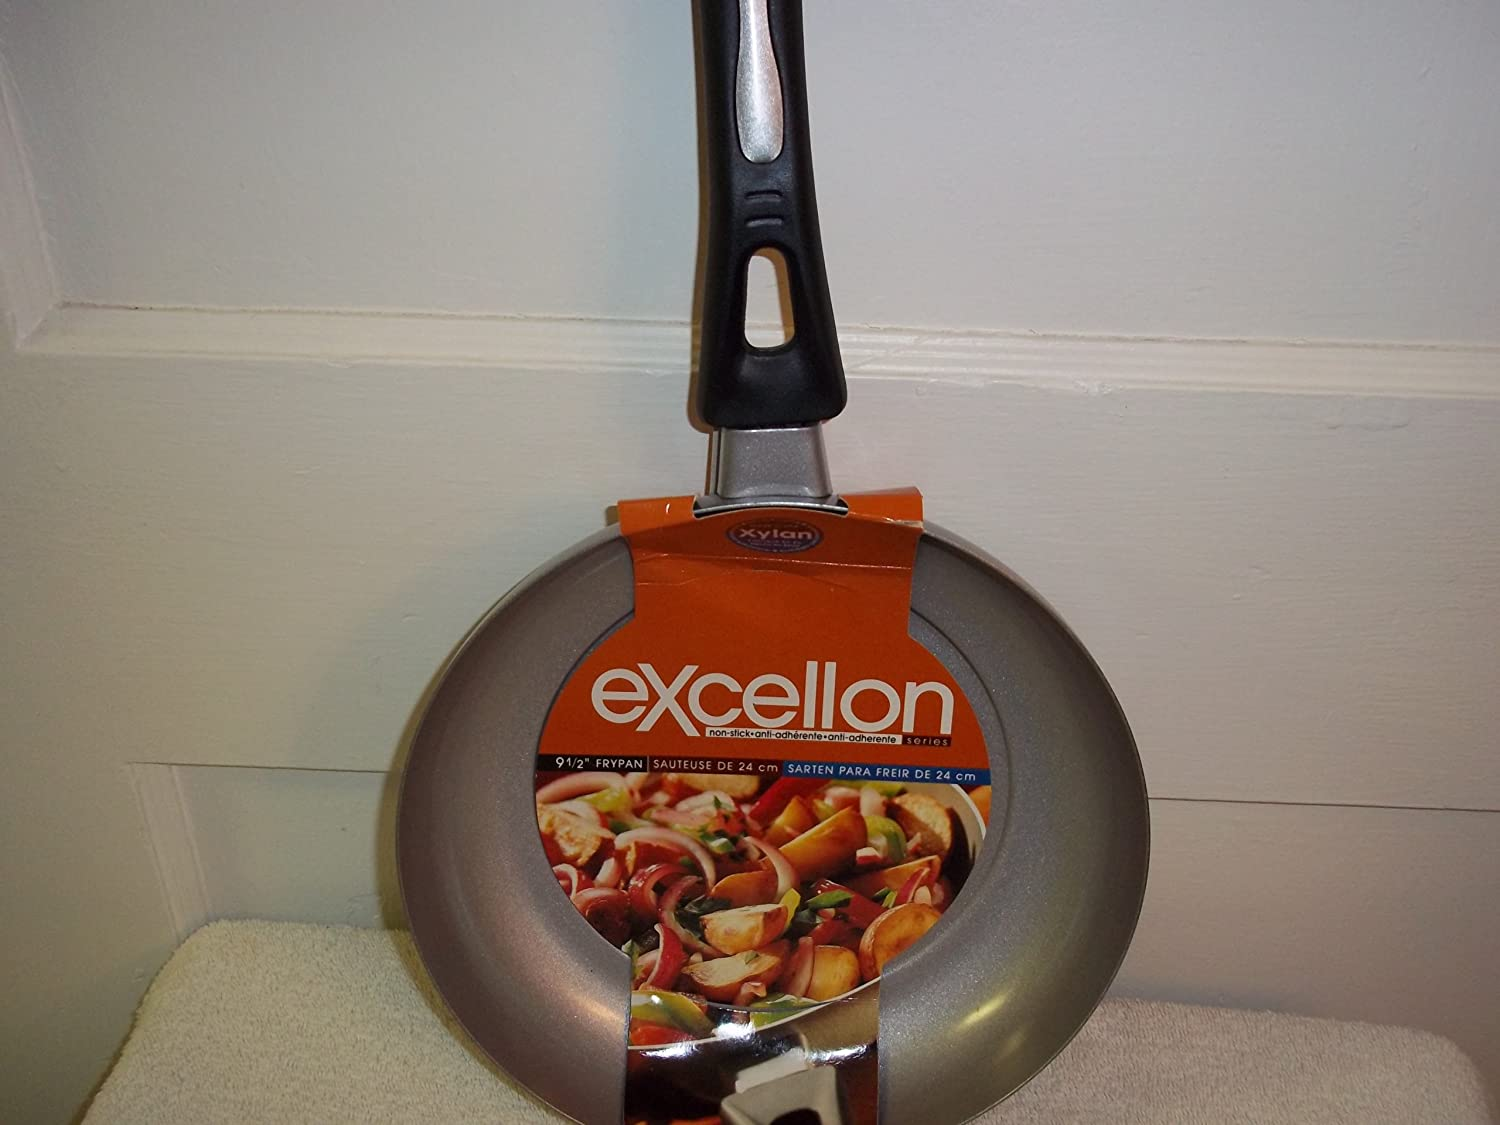 Amazon.com: EXCELLON NON-STICK ANTI-ADHERENTE 9 1/2